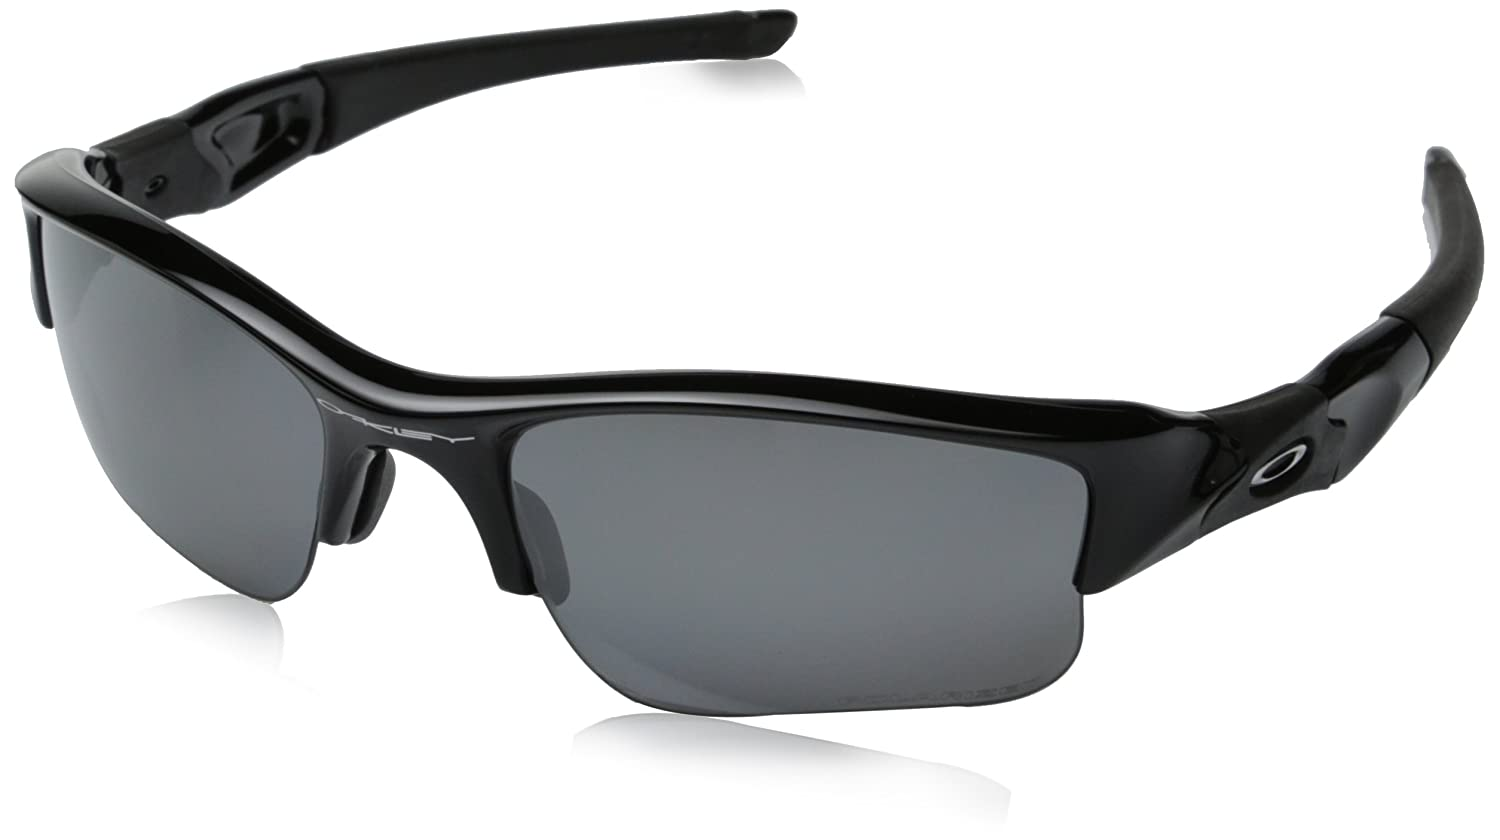 Amazon.com  Oakley Men s Flak Jacket XLJ 12-903 Sunglasses,Jet Black Frame  Black Iridium,one size  Oakley  Shoes 81b941a458